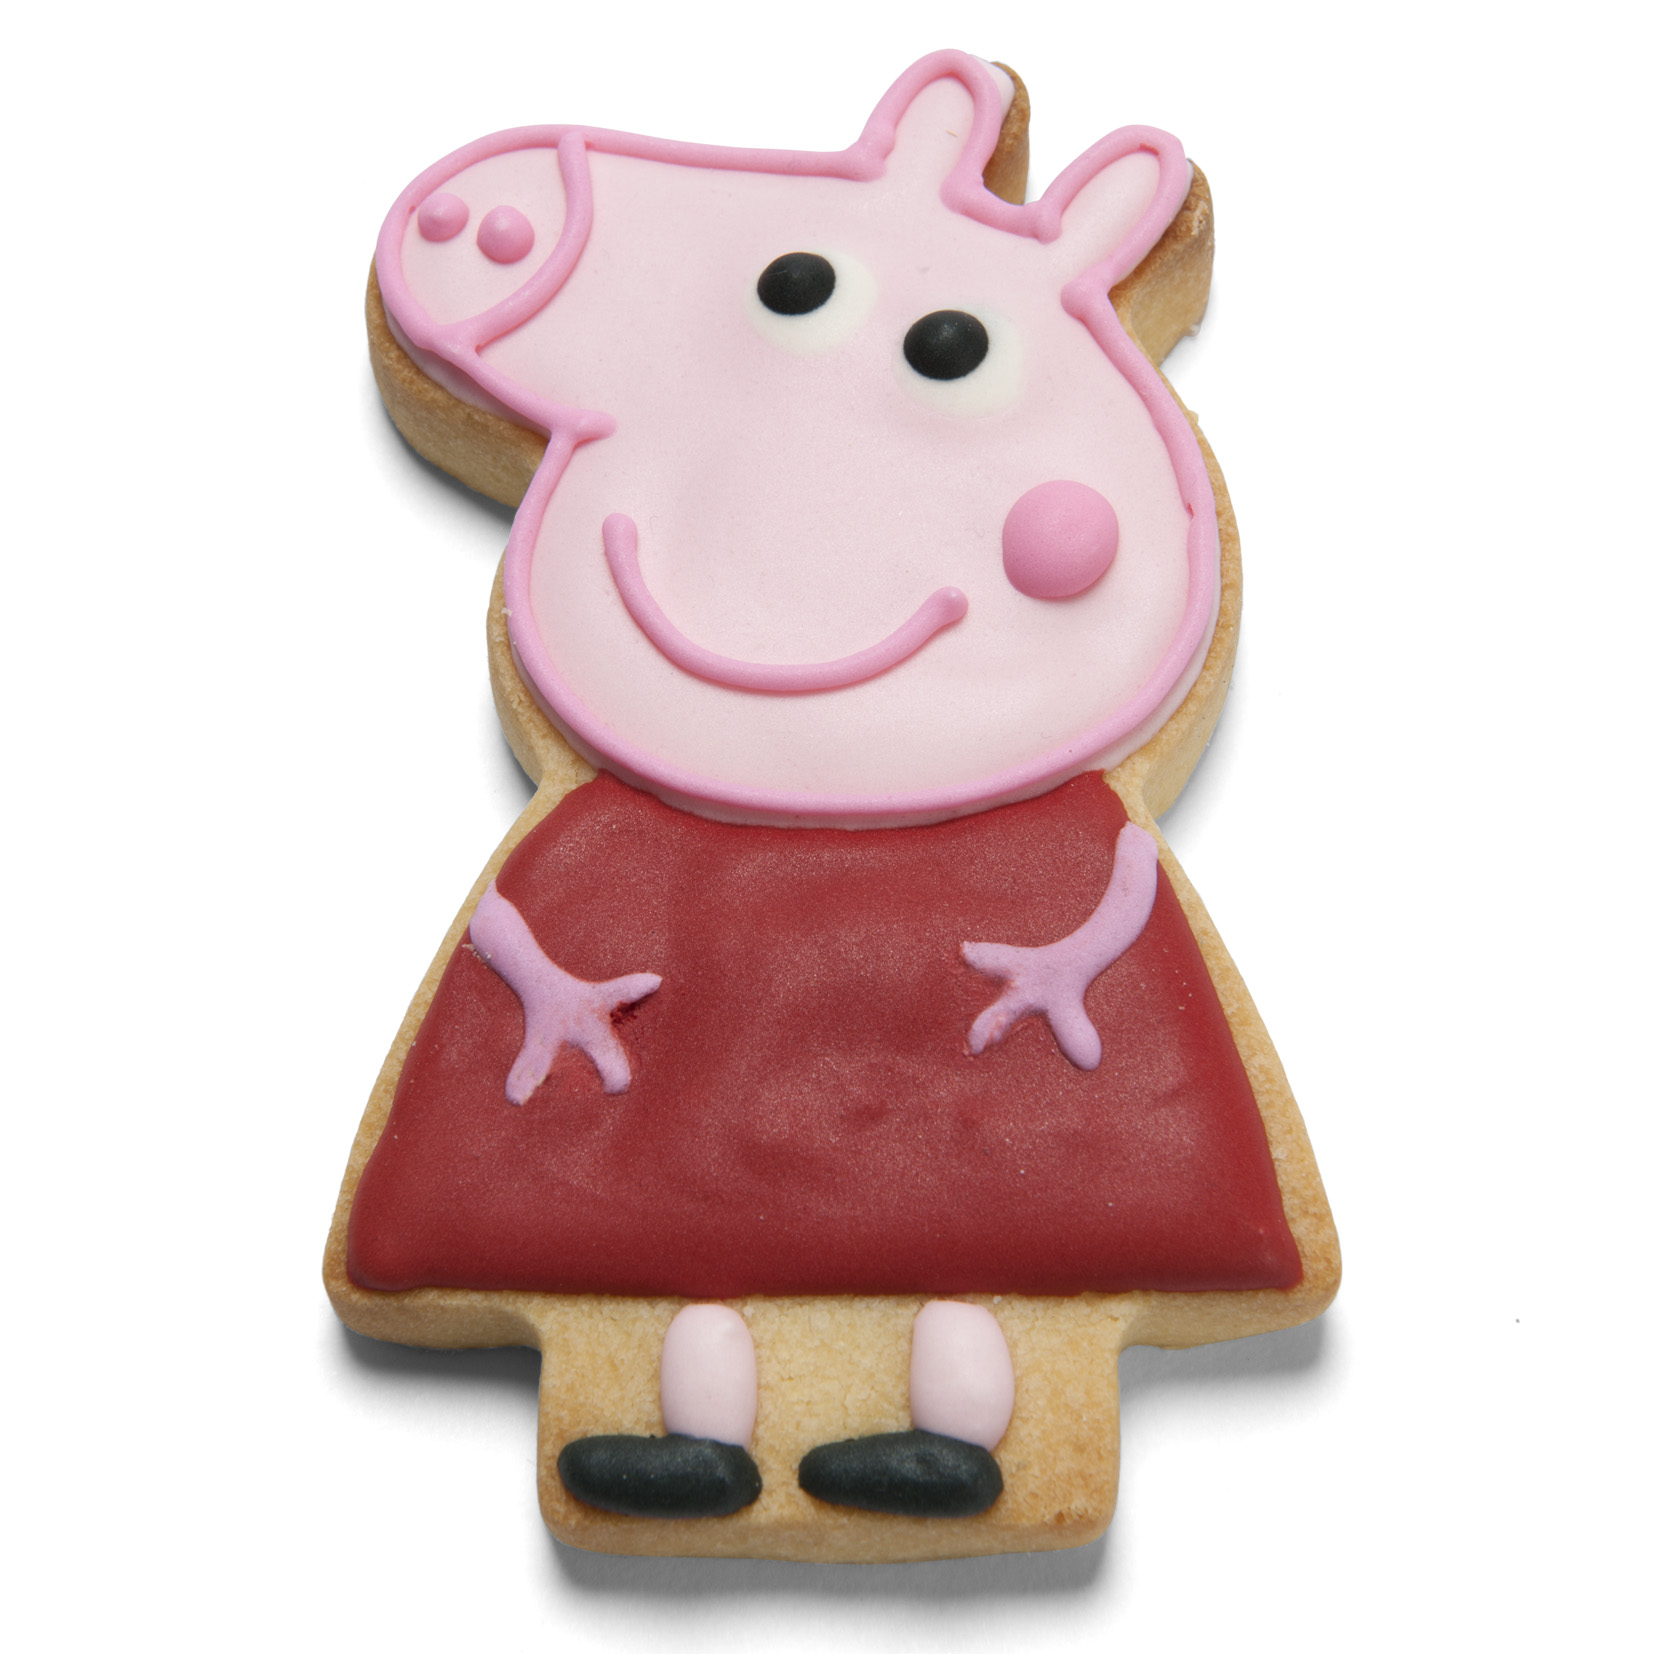 Peppa Pig Body Cookie Cutter Handmade Cuttercraft